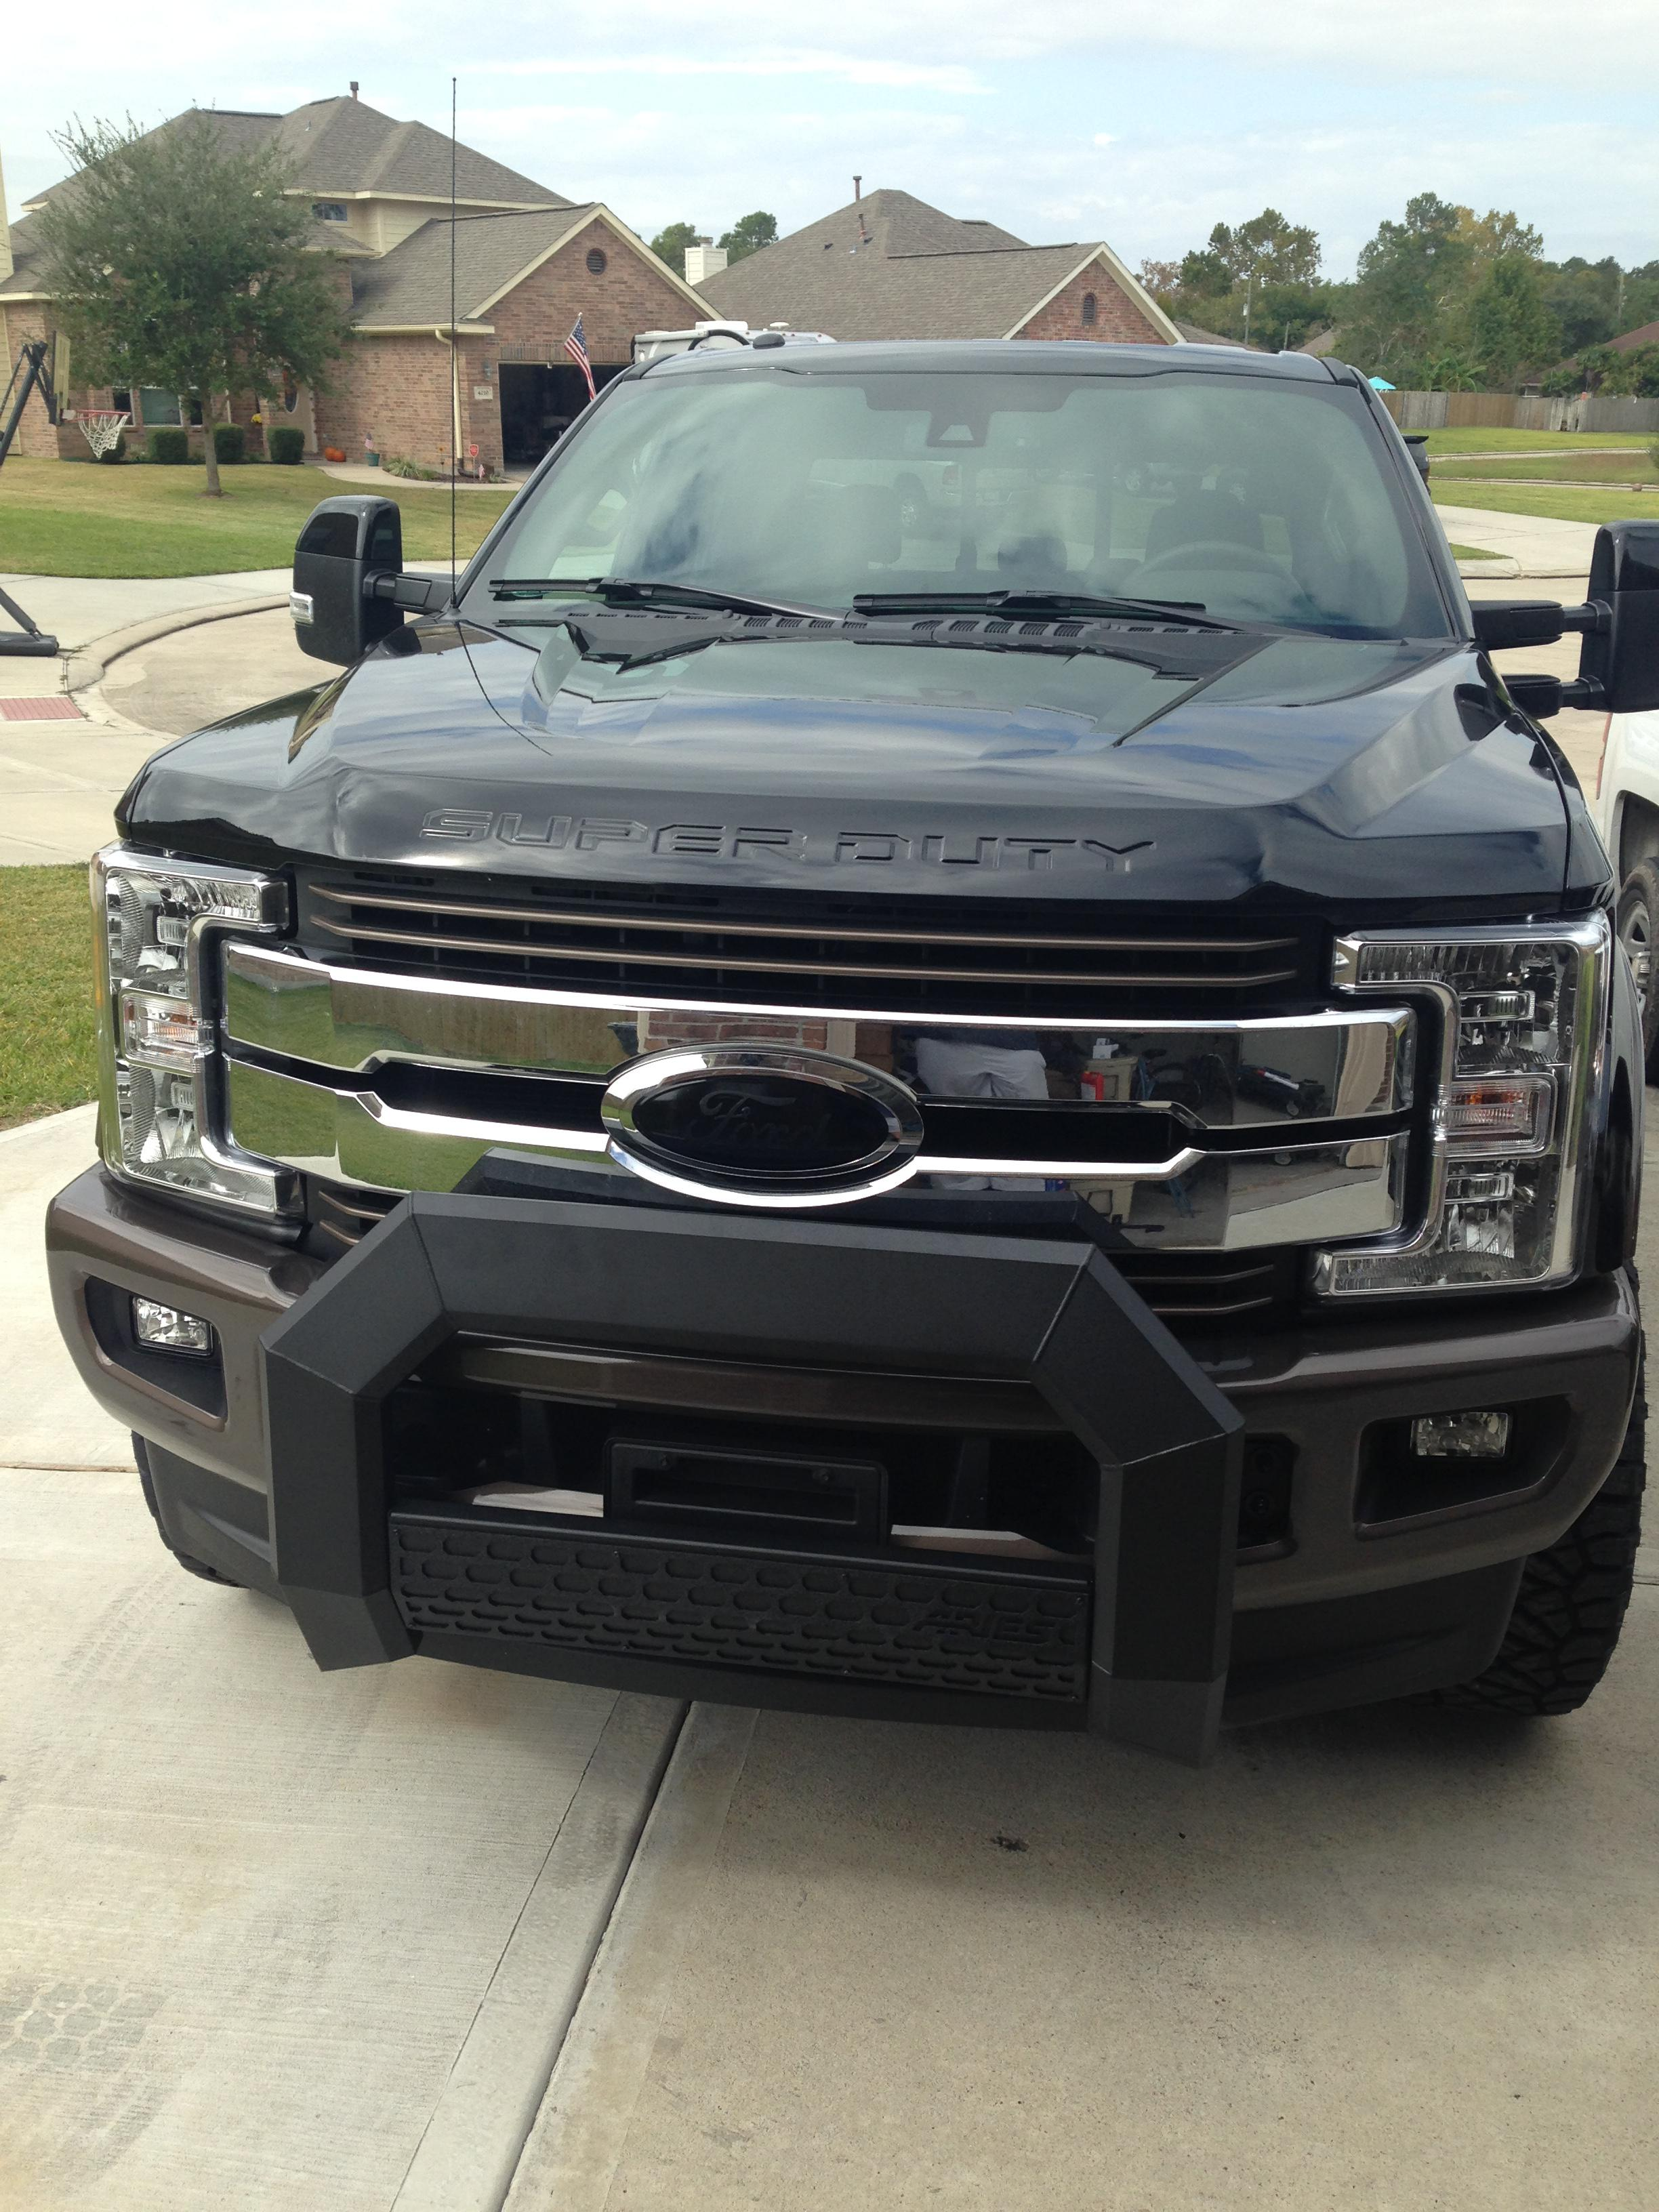 com ranch forum thumbnails forums ford thedieselstop attached king grille painted diesel